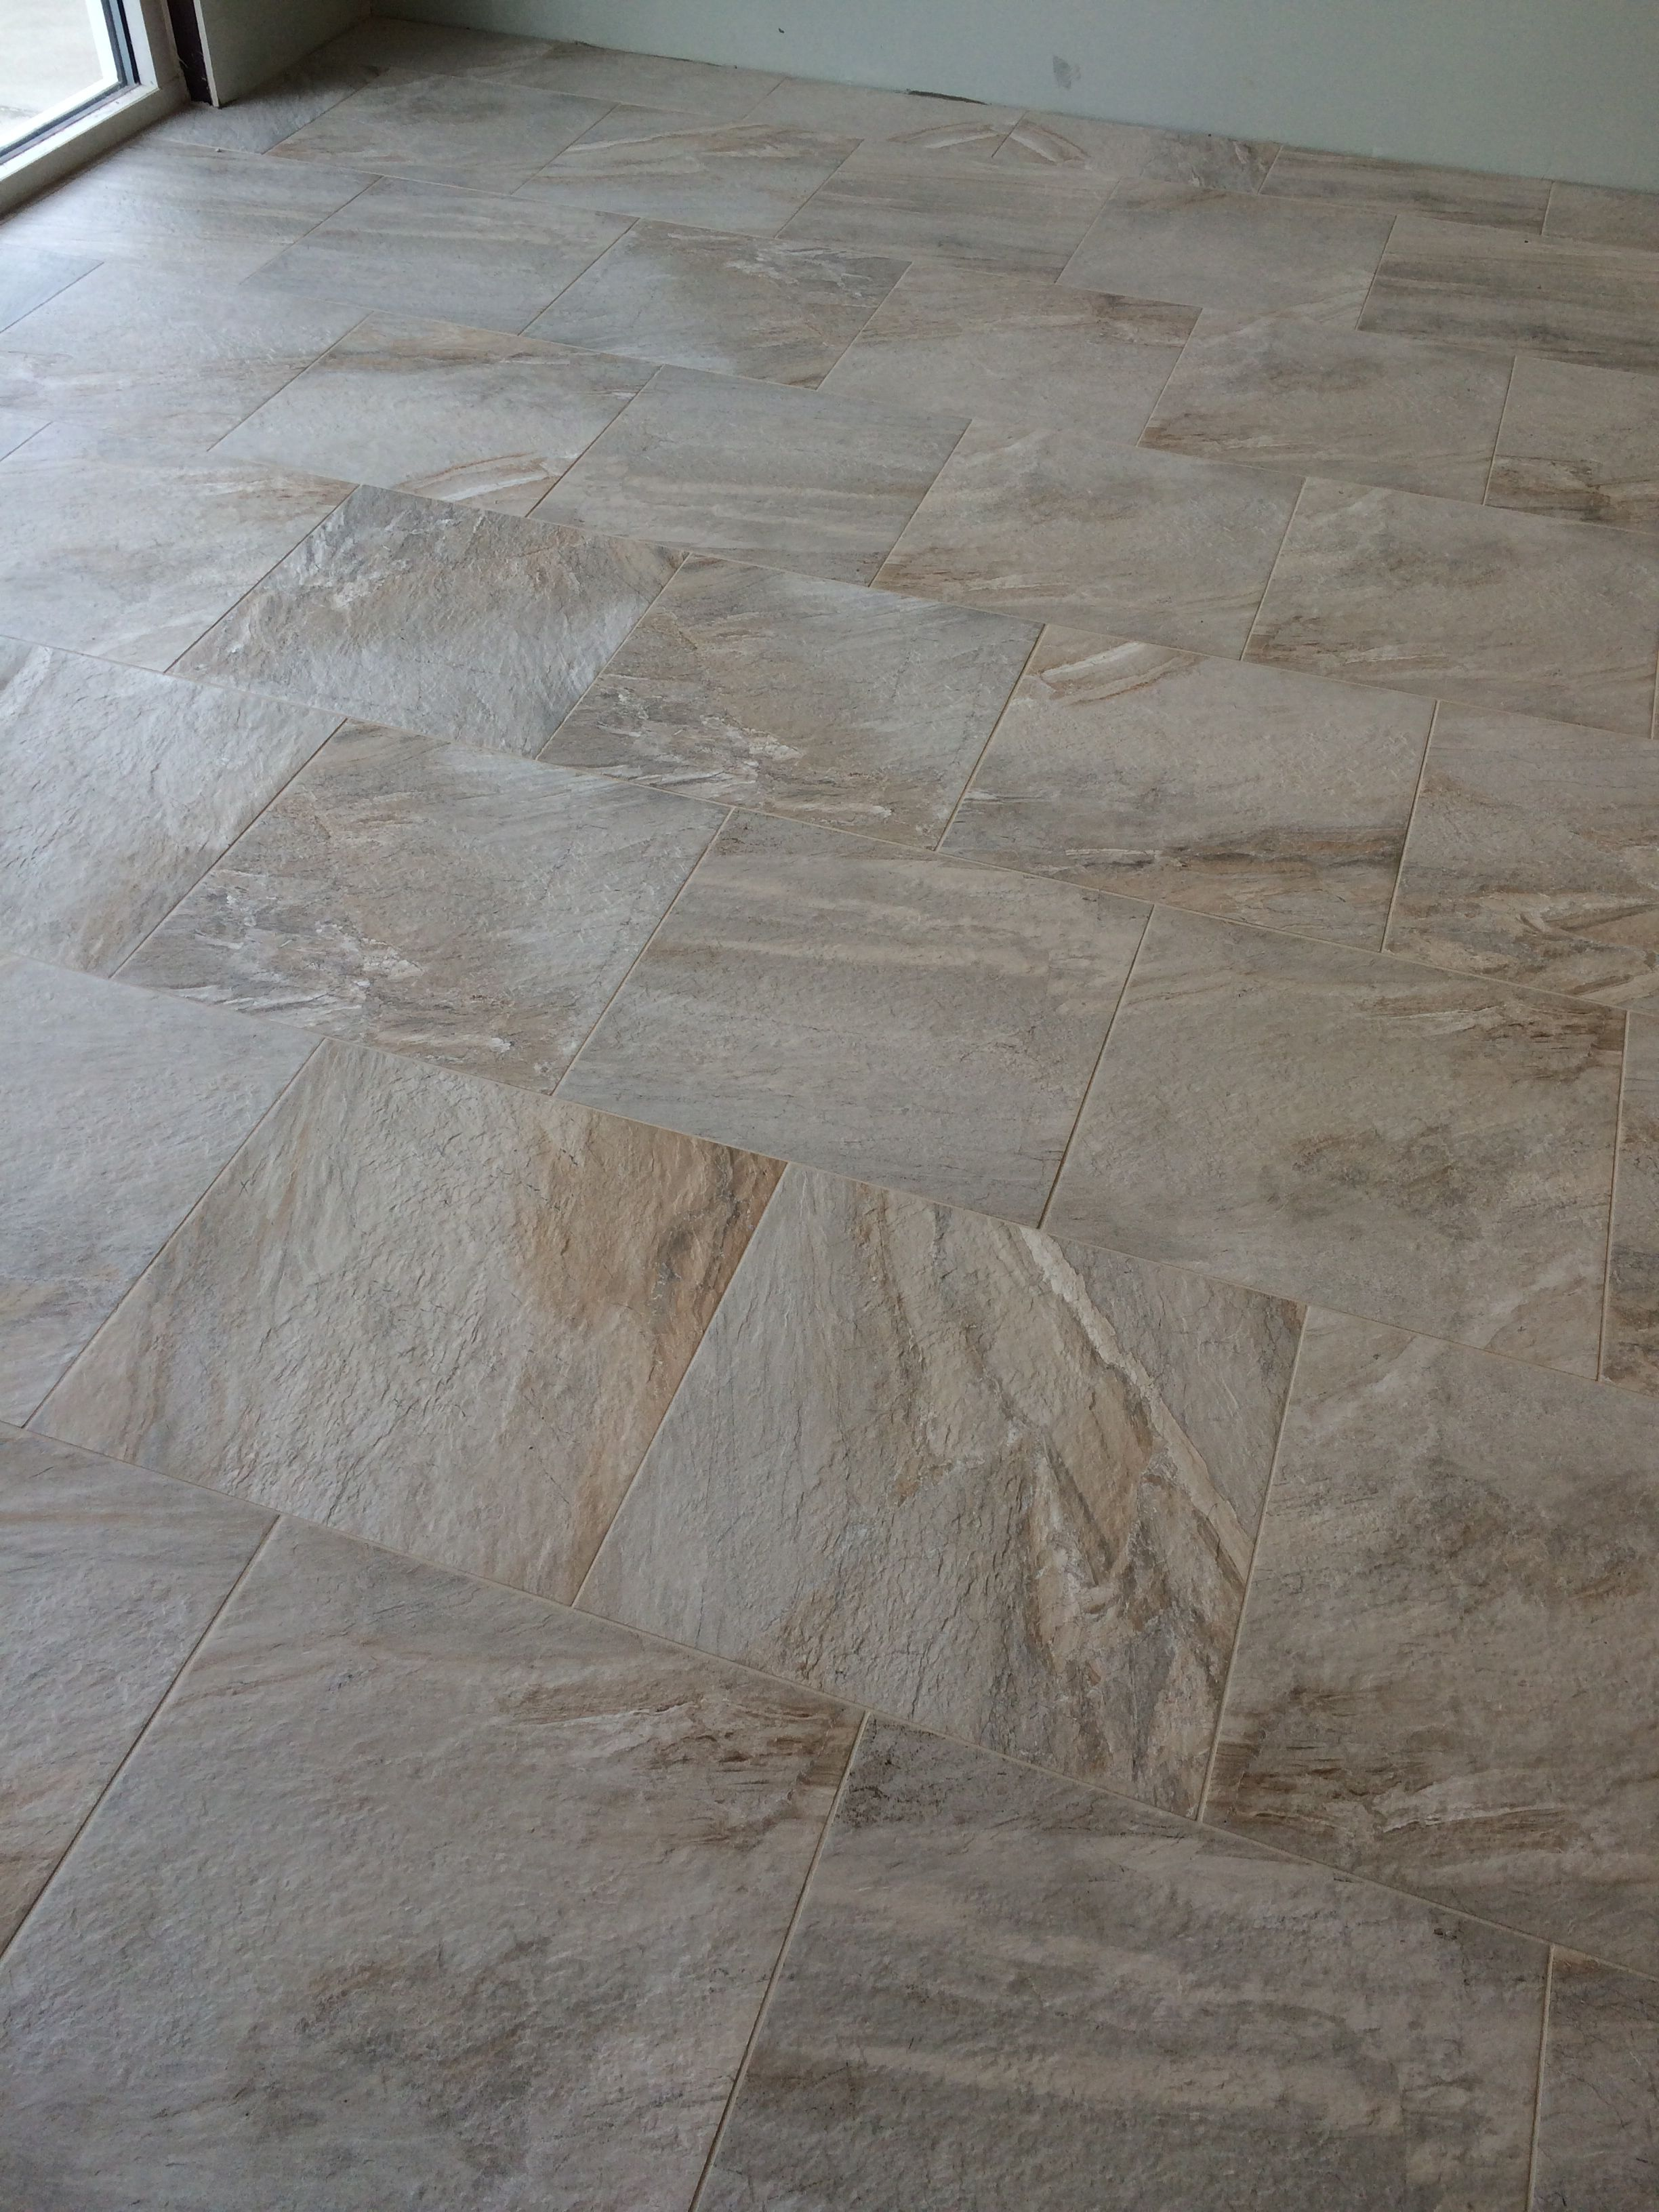 Happy floors fitch cloud 20x20 with custom fusion oyster